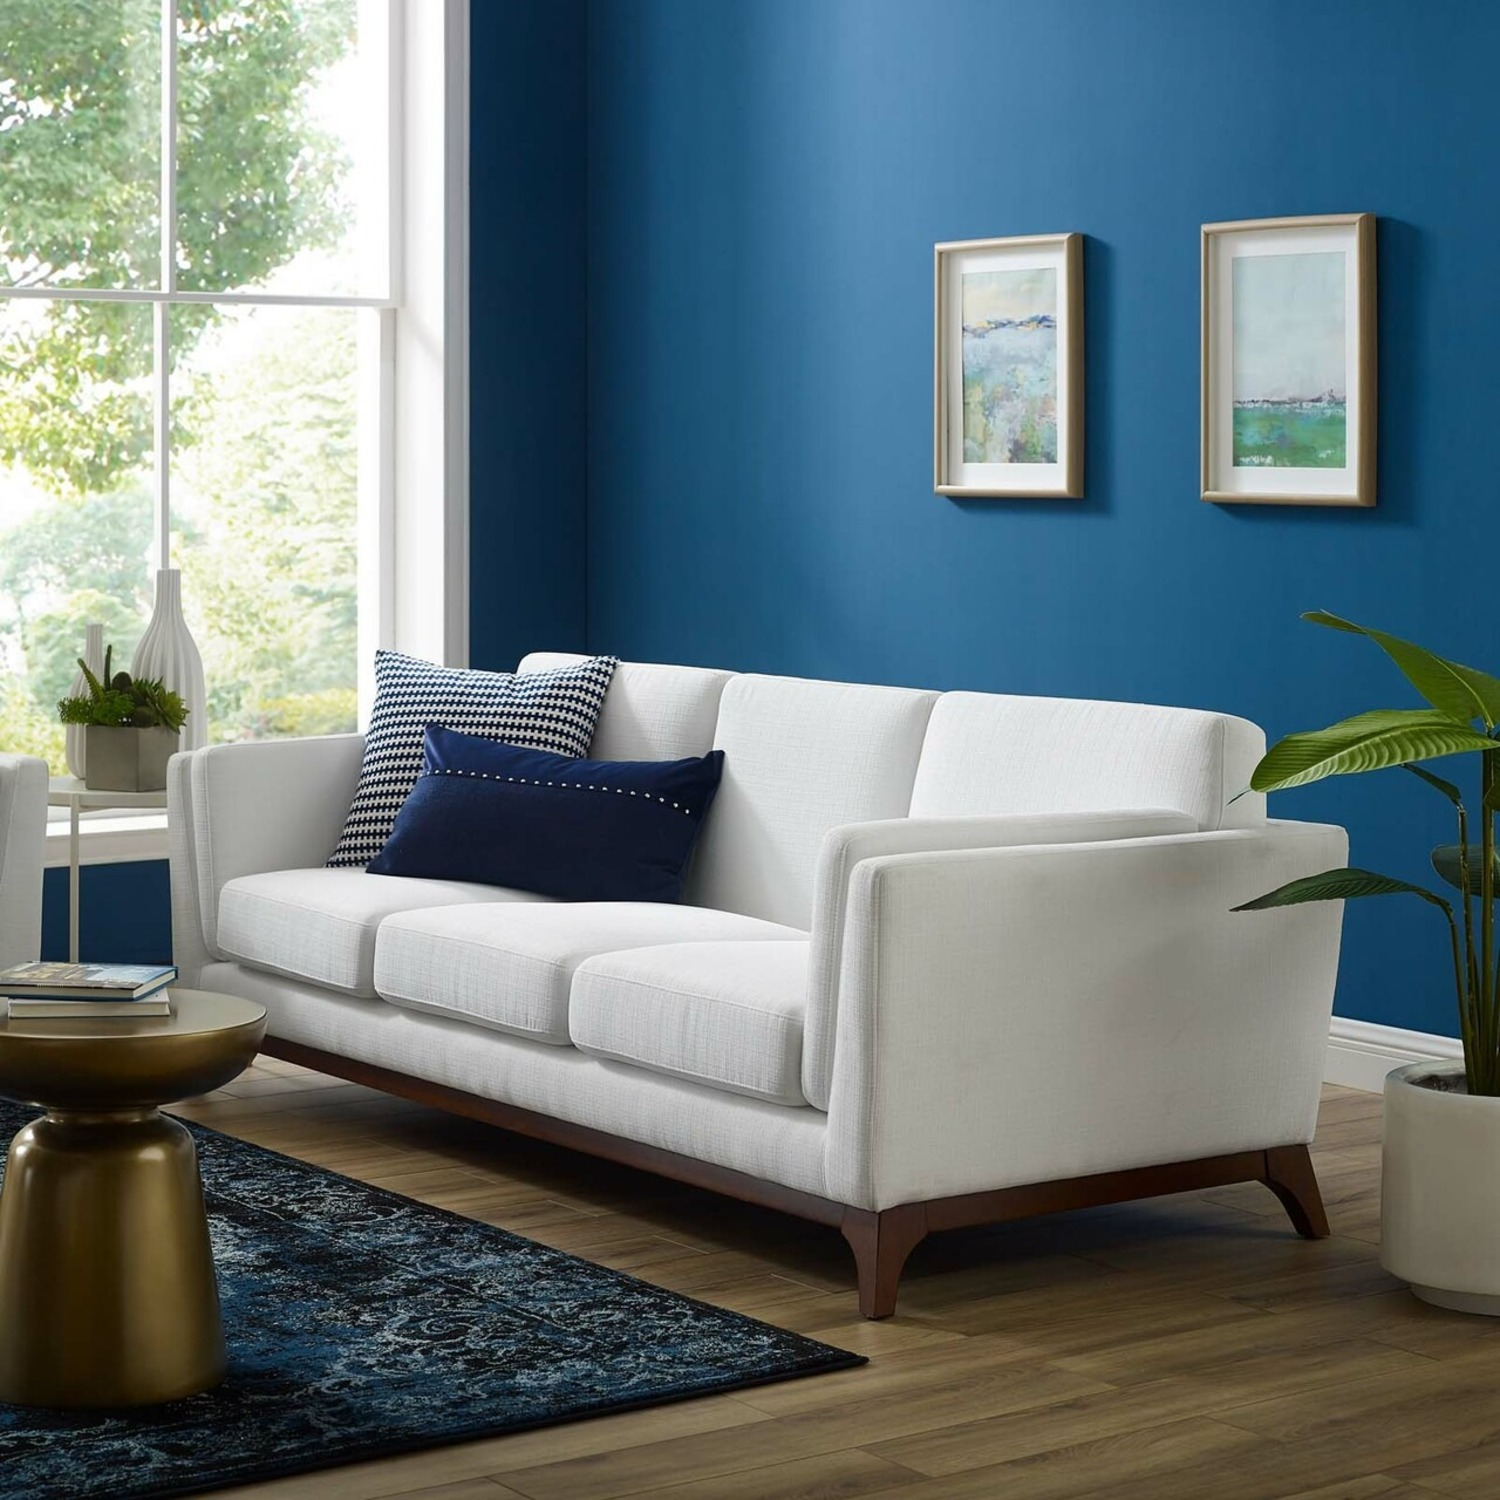 Sofa In White Fabric W/ Solid Wood Frame - image-4